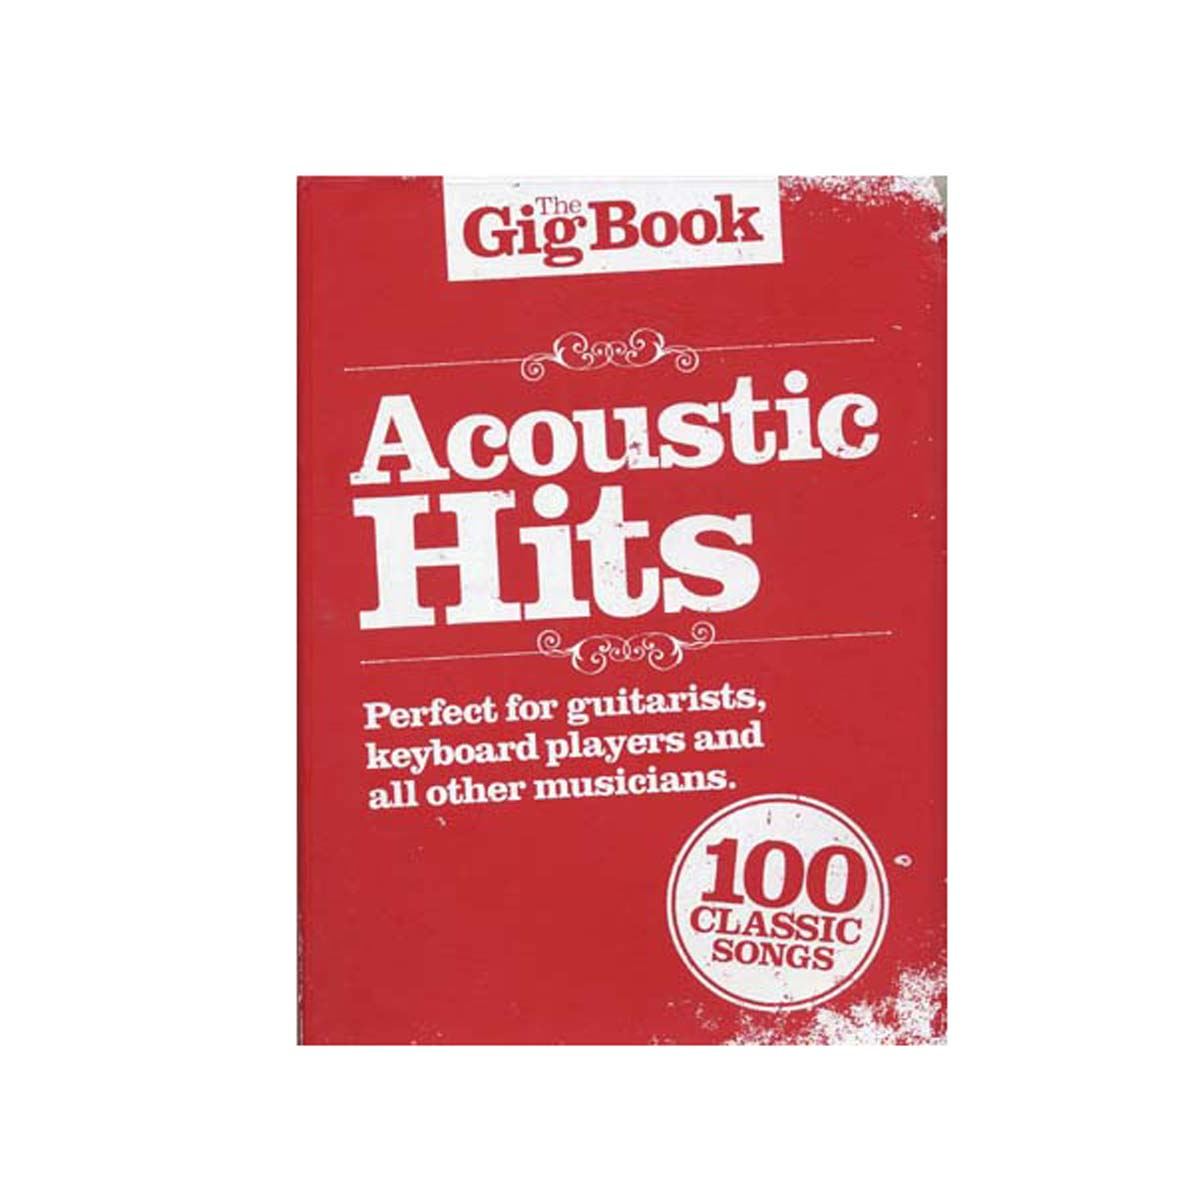 Acoustic hits the Gig book